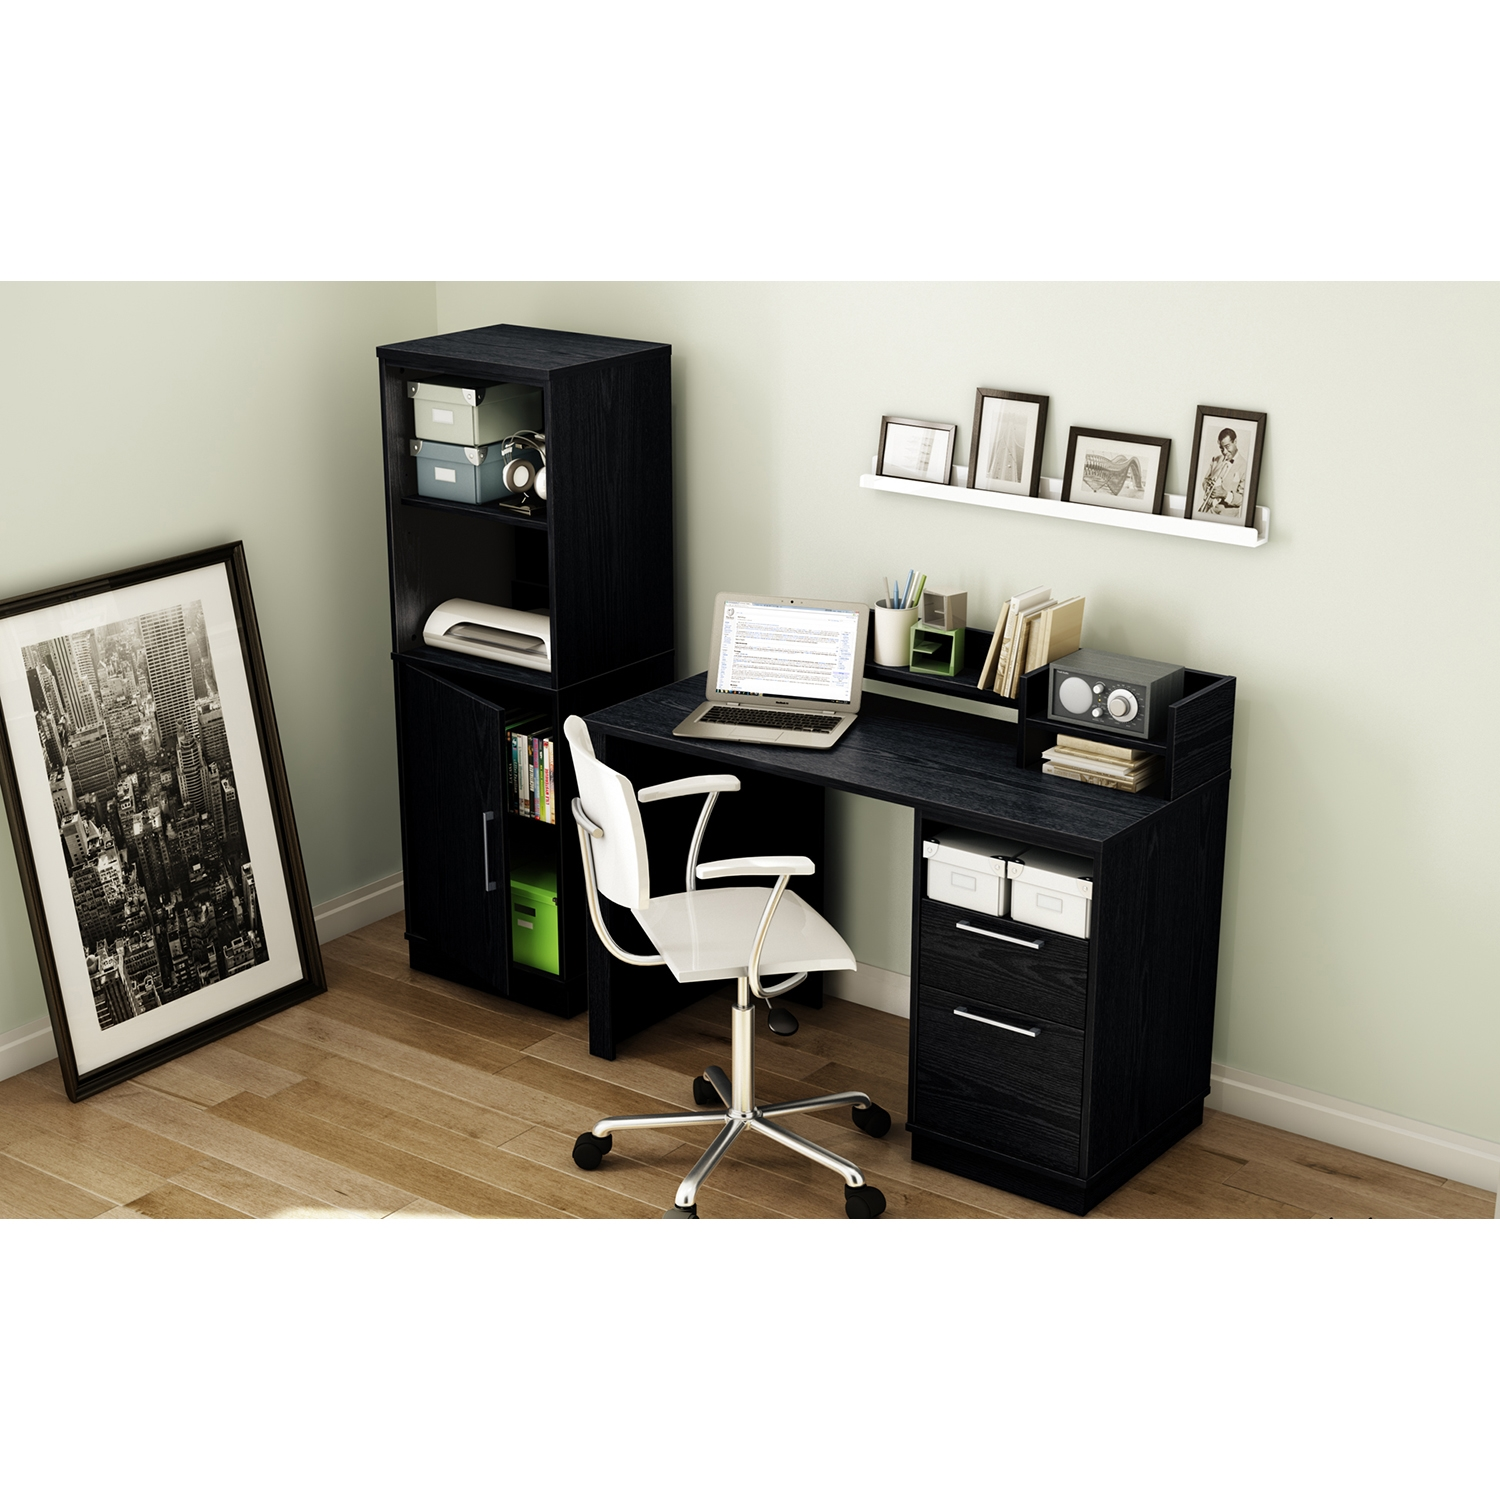 Academic Office Desk - Black Oak - SS-7247795